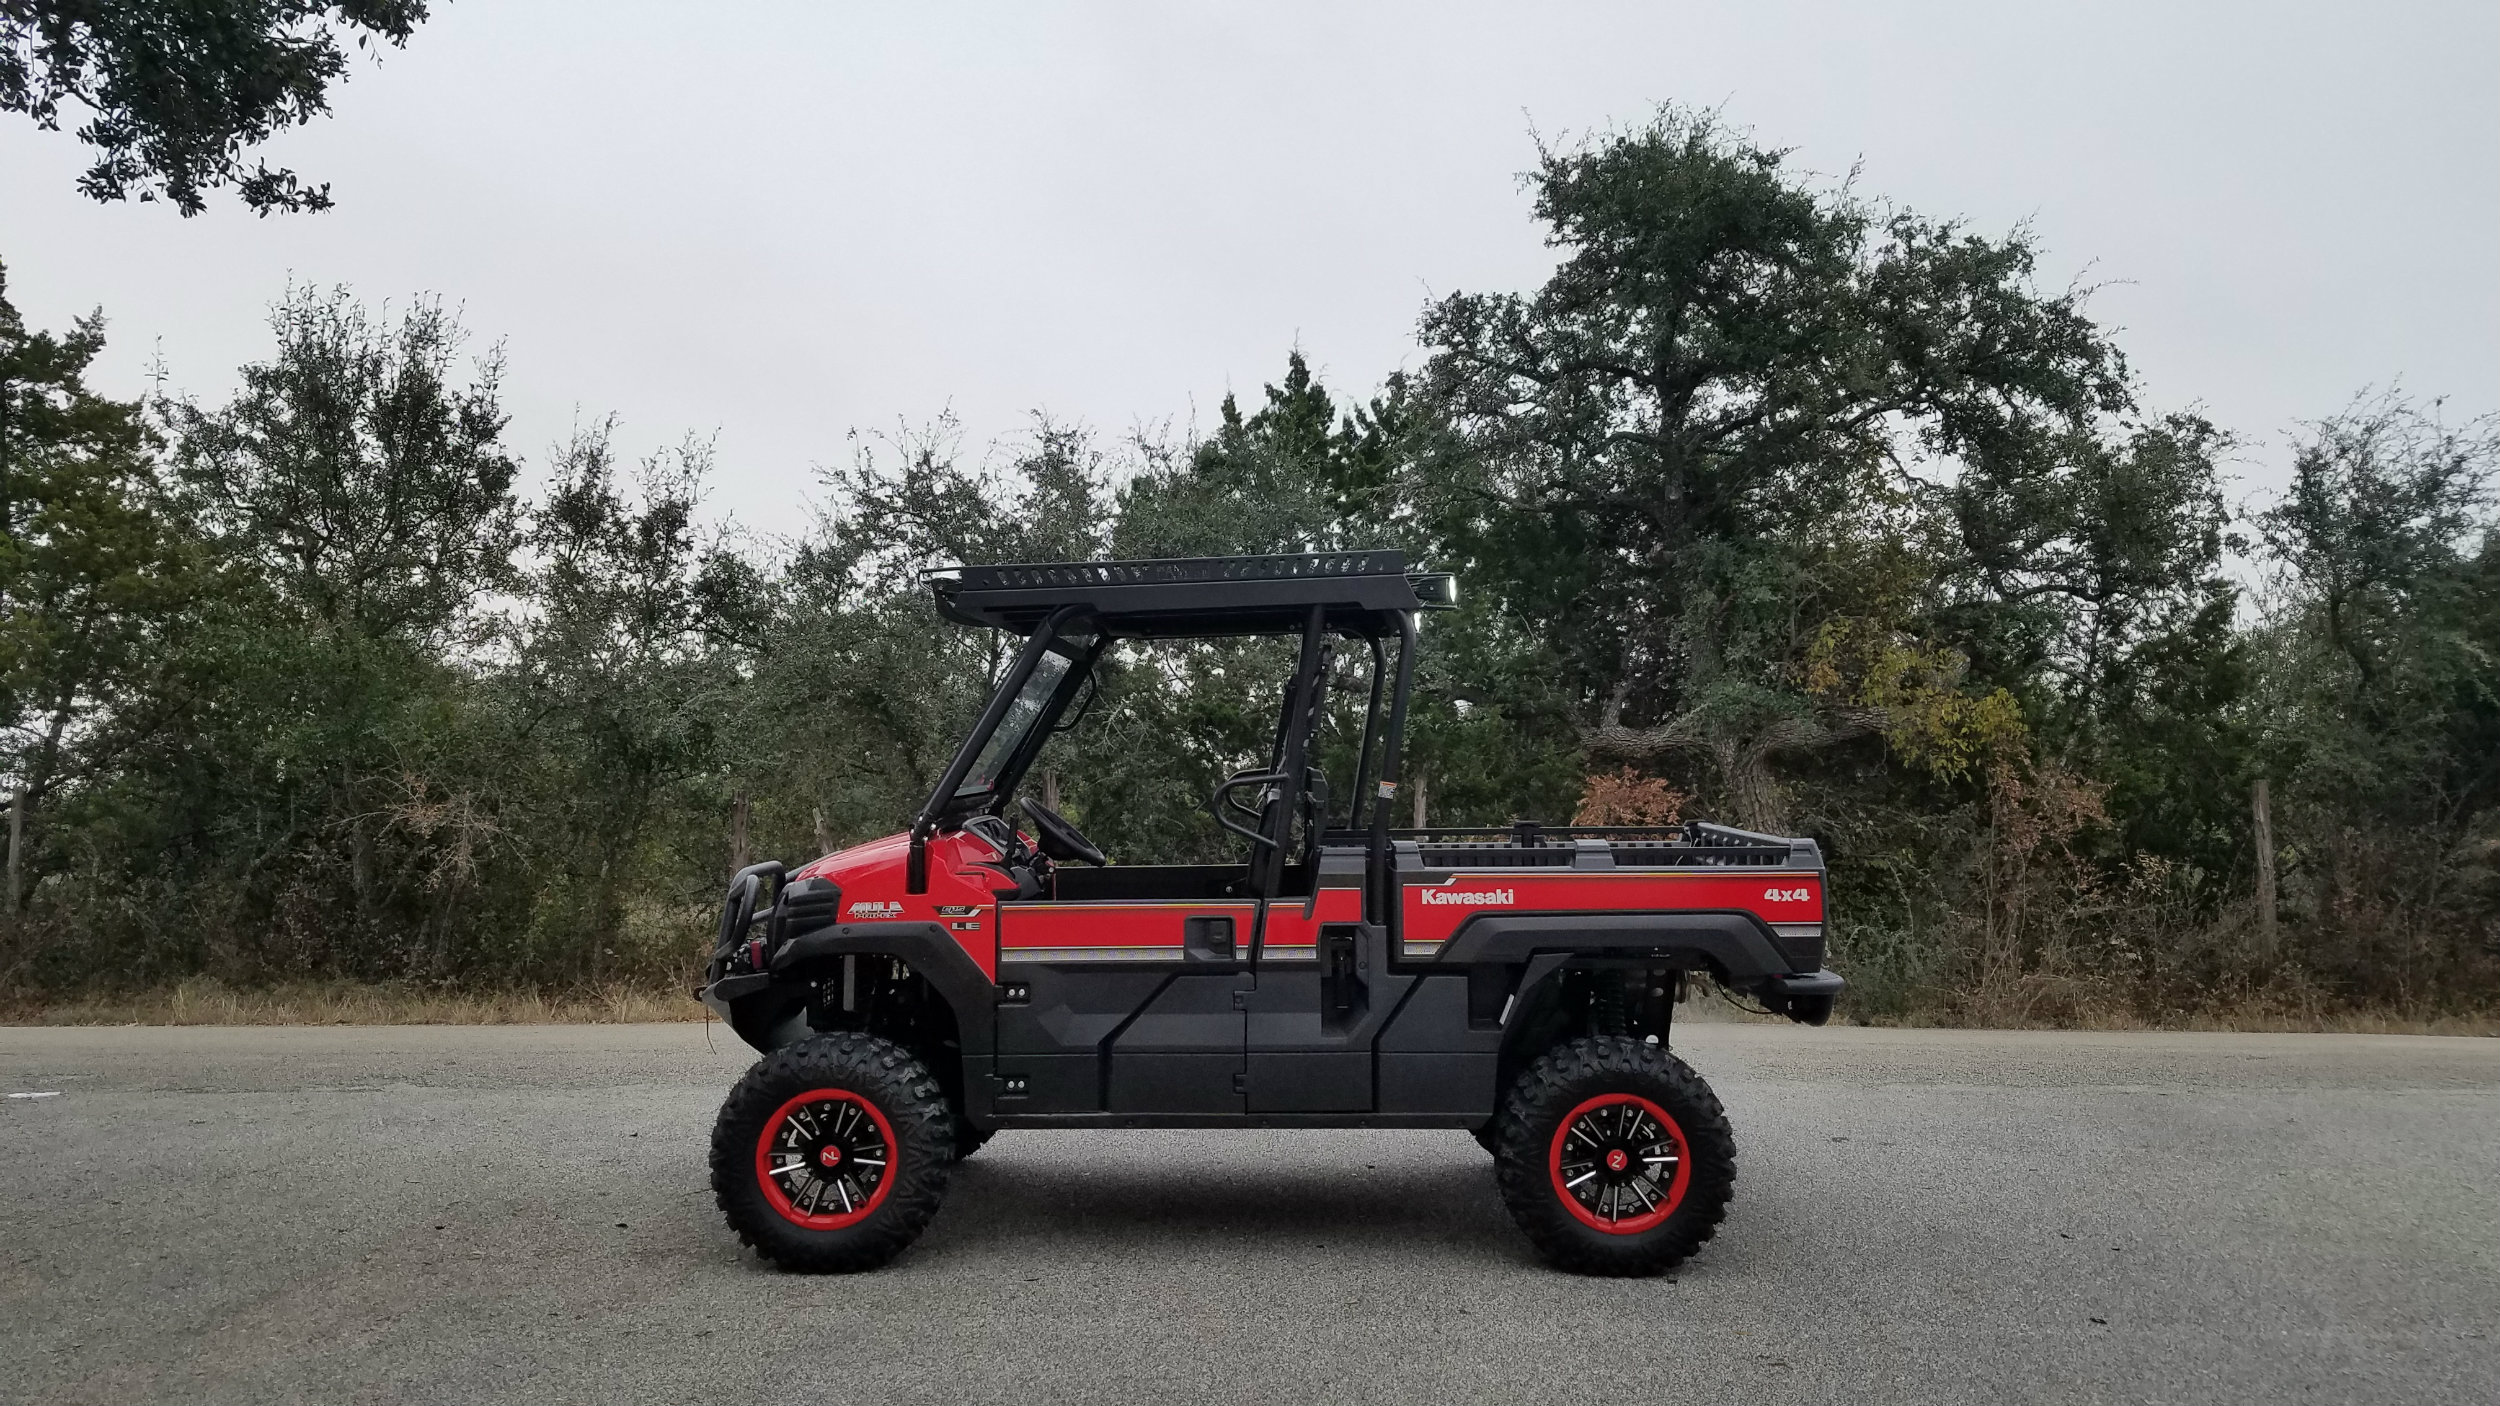 kawasaki-mule-pro-fx-metal-roof-and-outfit-with-bumpers-lift-and-windshield.jpg